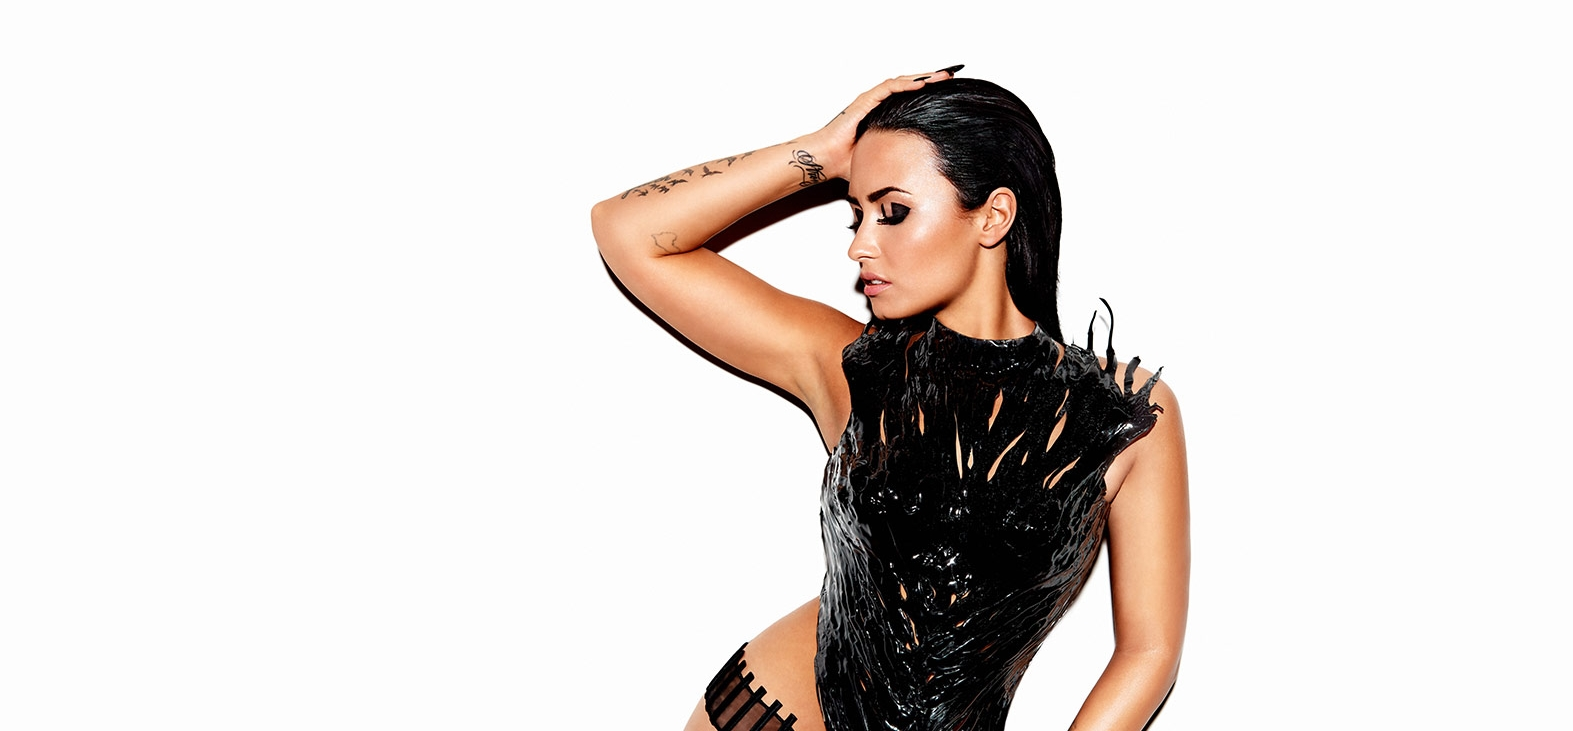 Demi Lovato Confident Tour Abuse Revealing Interview Feels